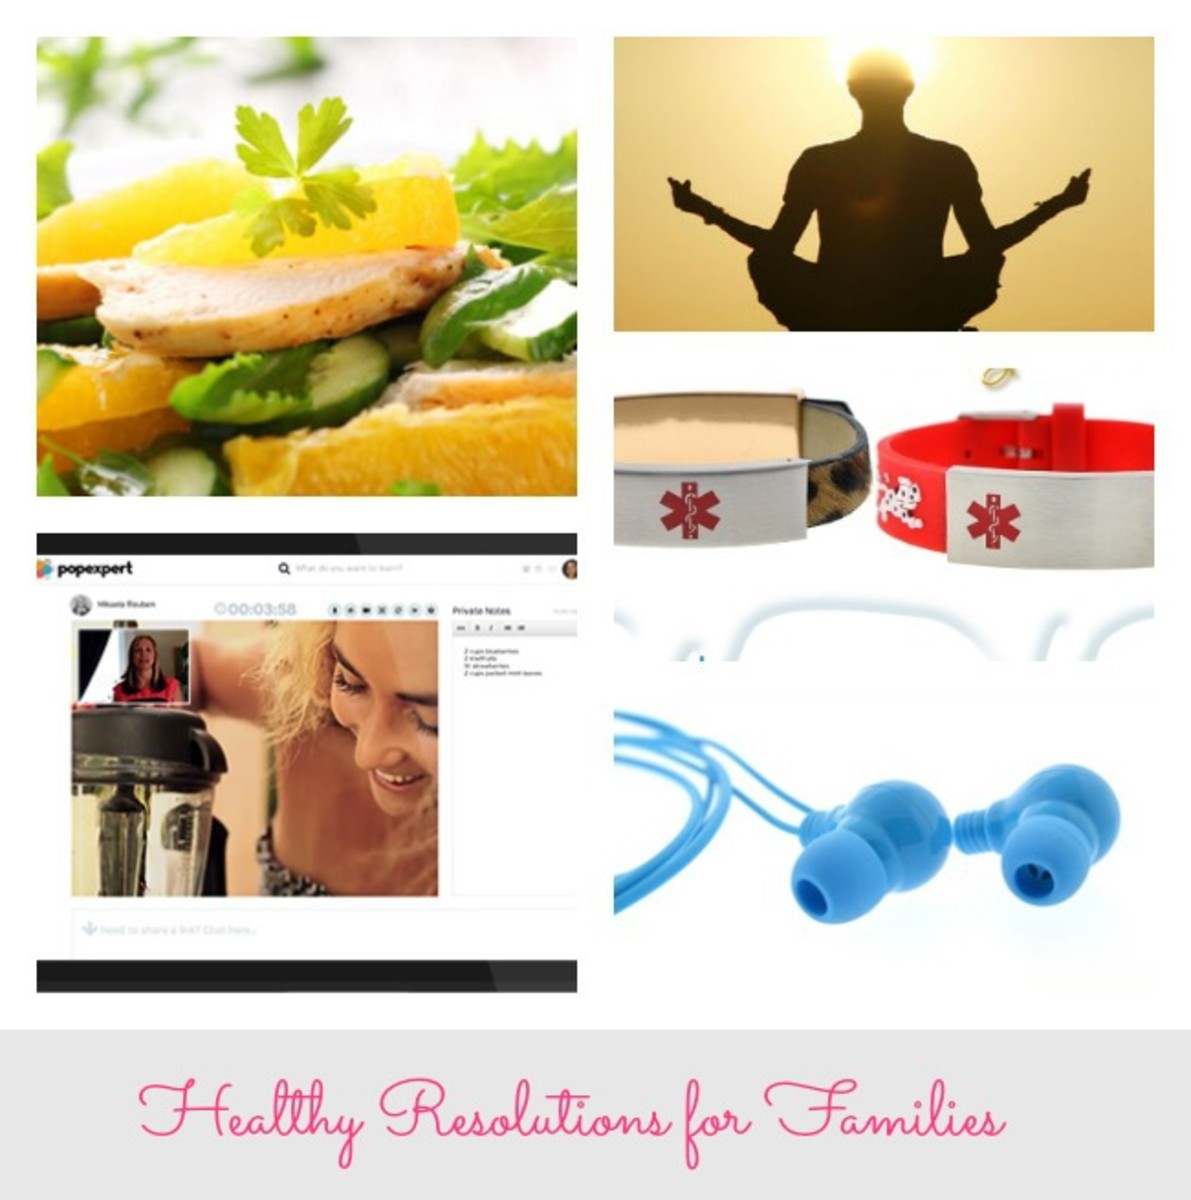 Healthy Resolutions for Families